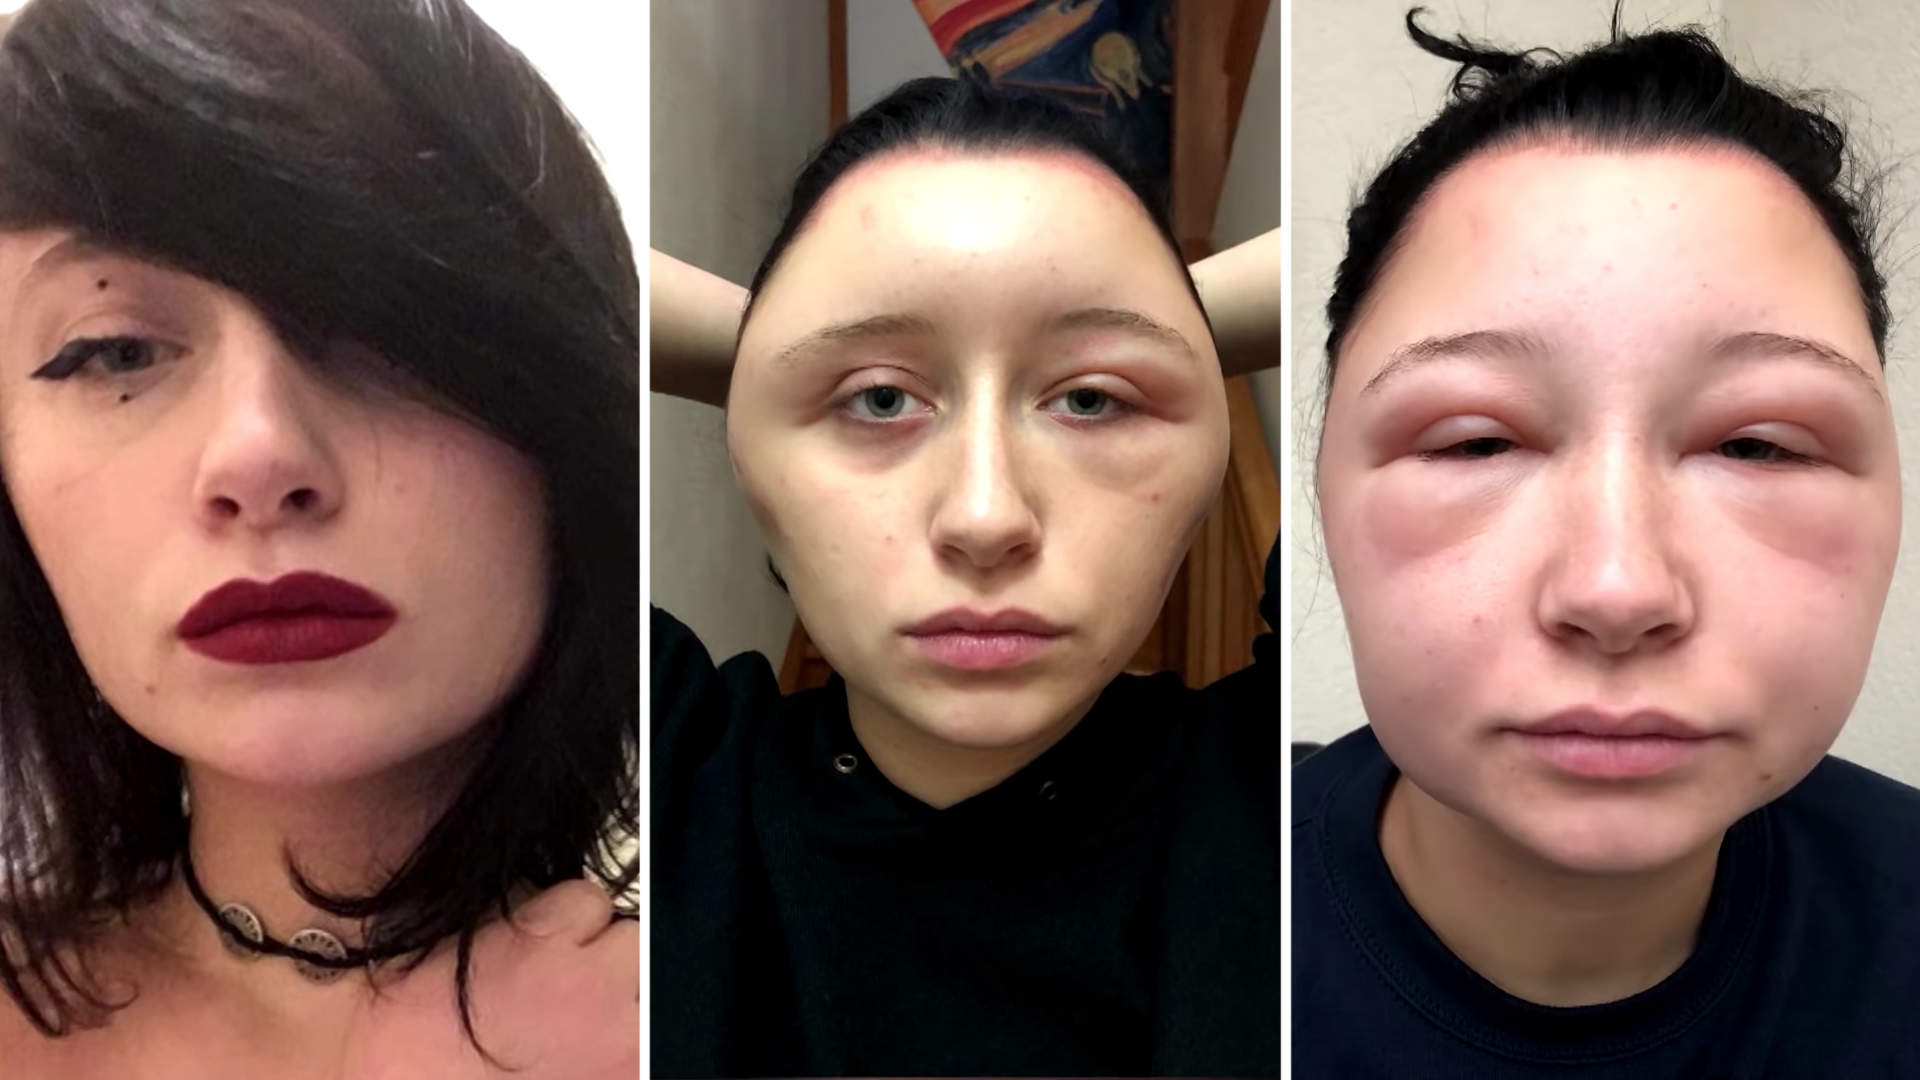 Woman S Head Doubled In Size After Allergic Reaction To Ppd In Hair